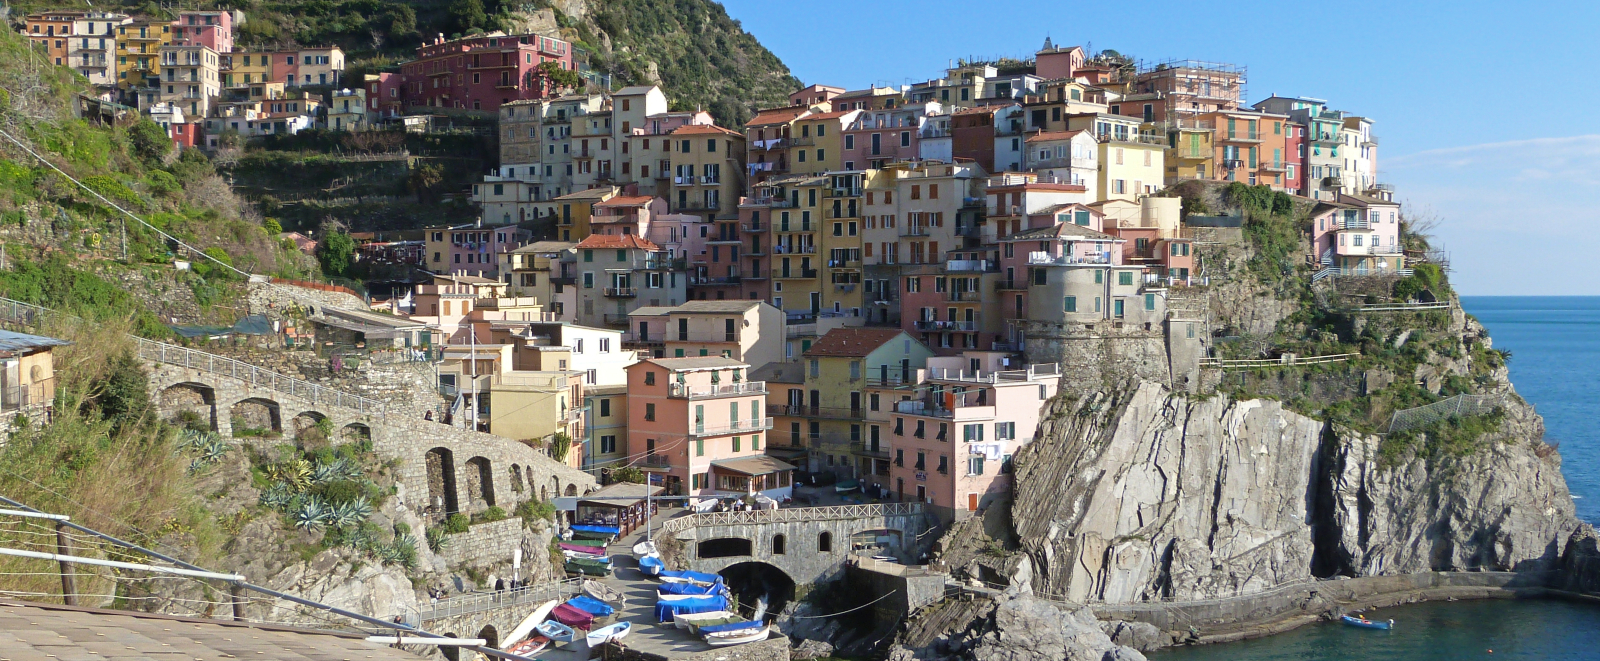 Best towns to visit in the Italian Riviera